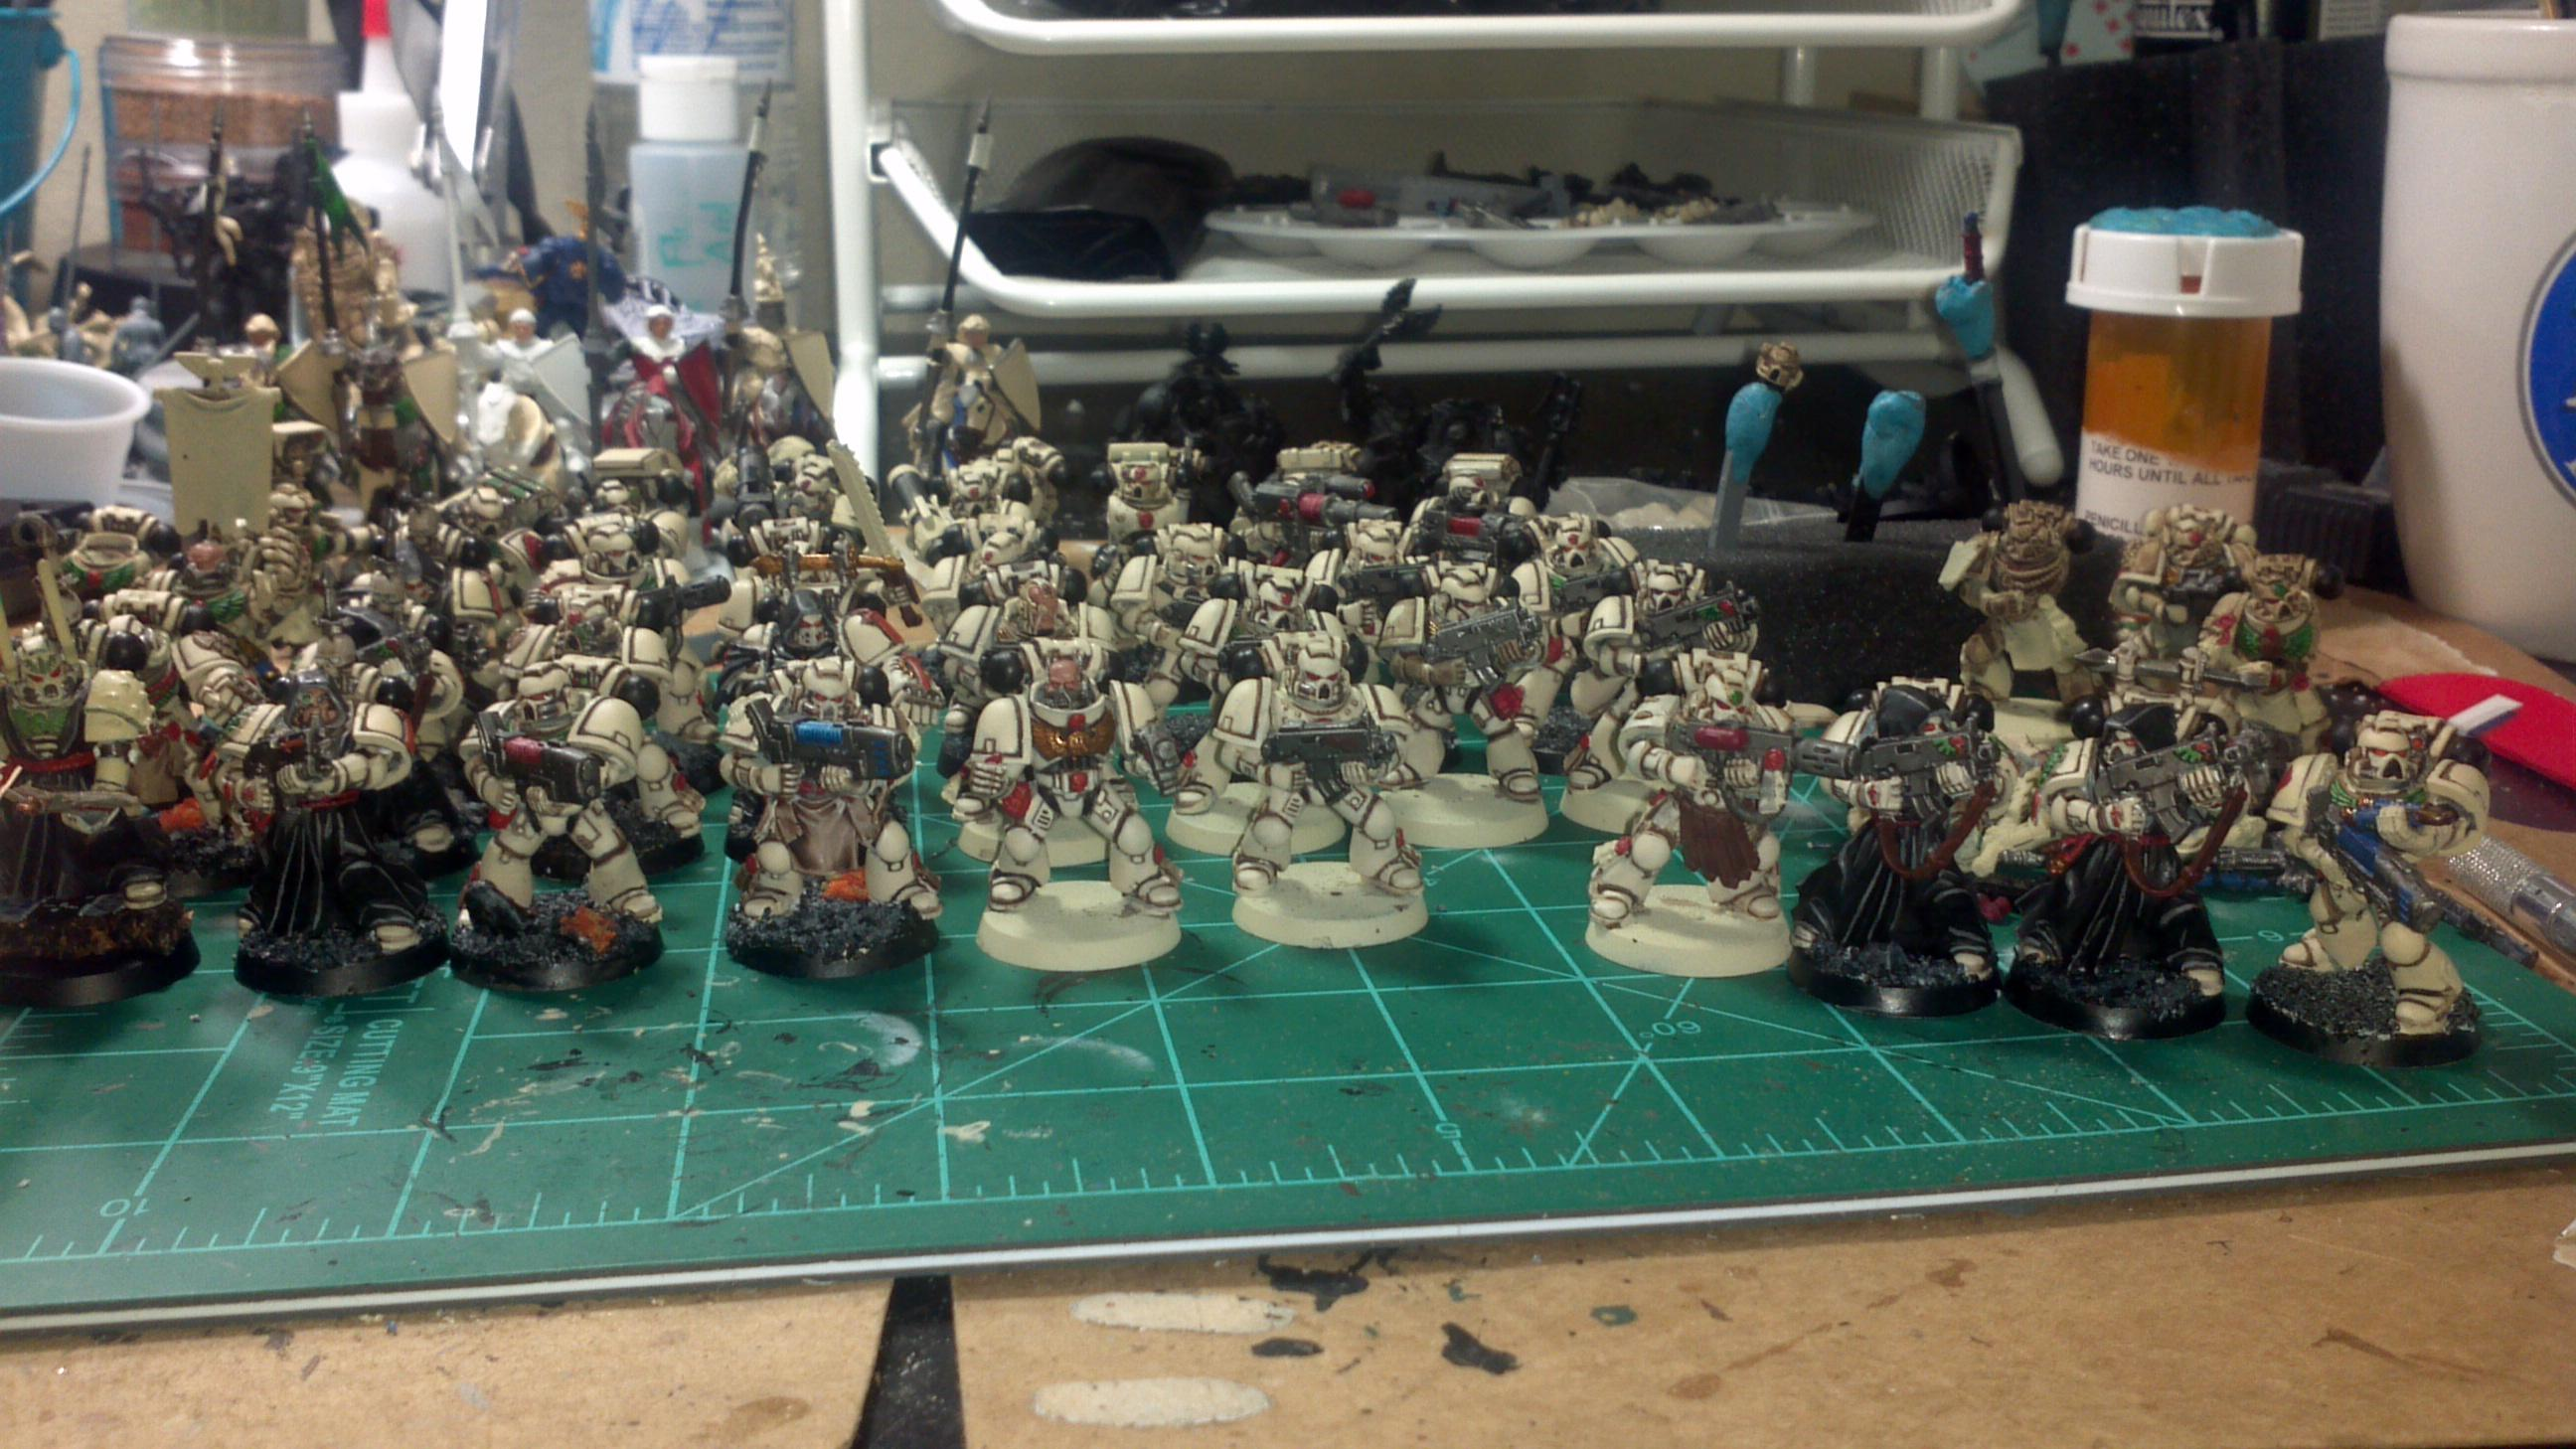 Third squad - not finished, got a couple of special weapons already though